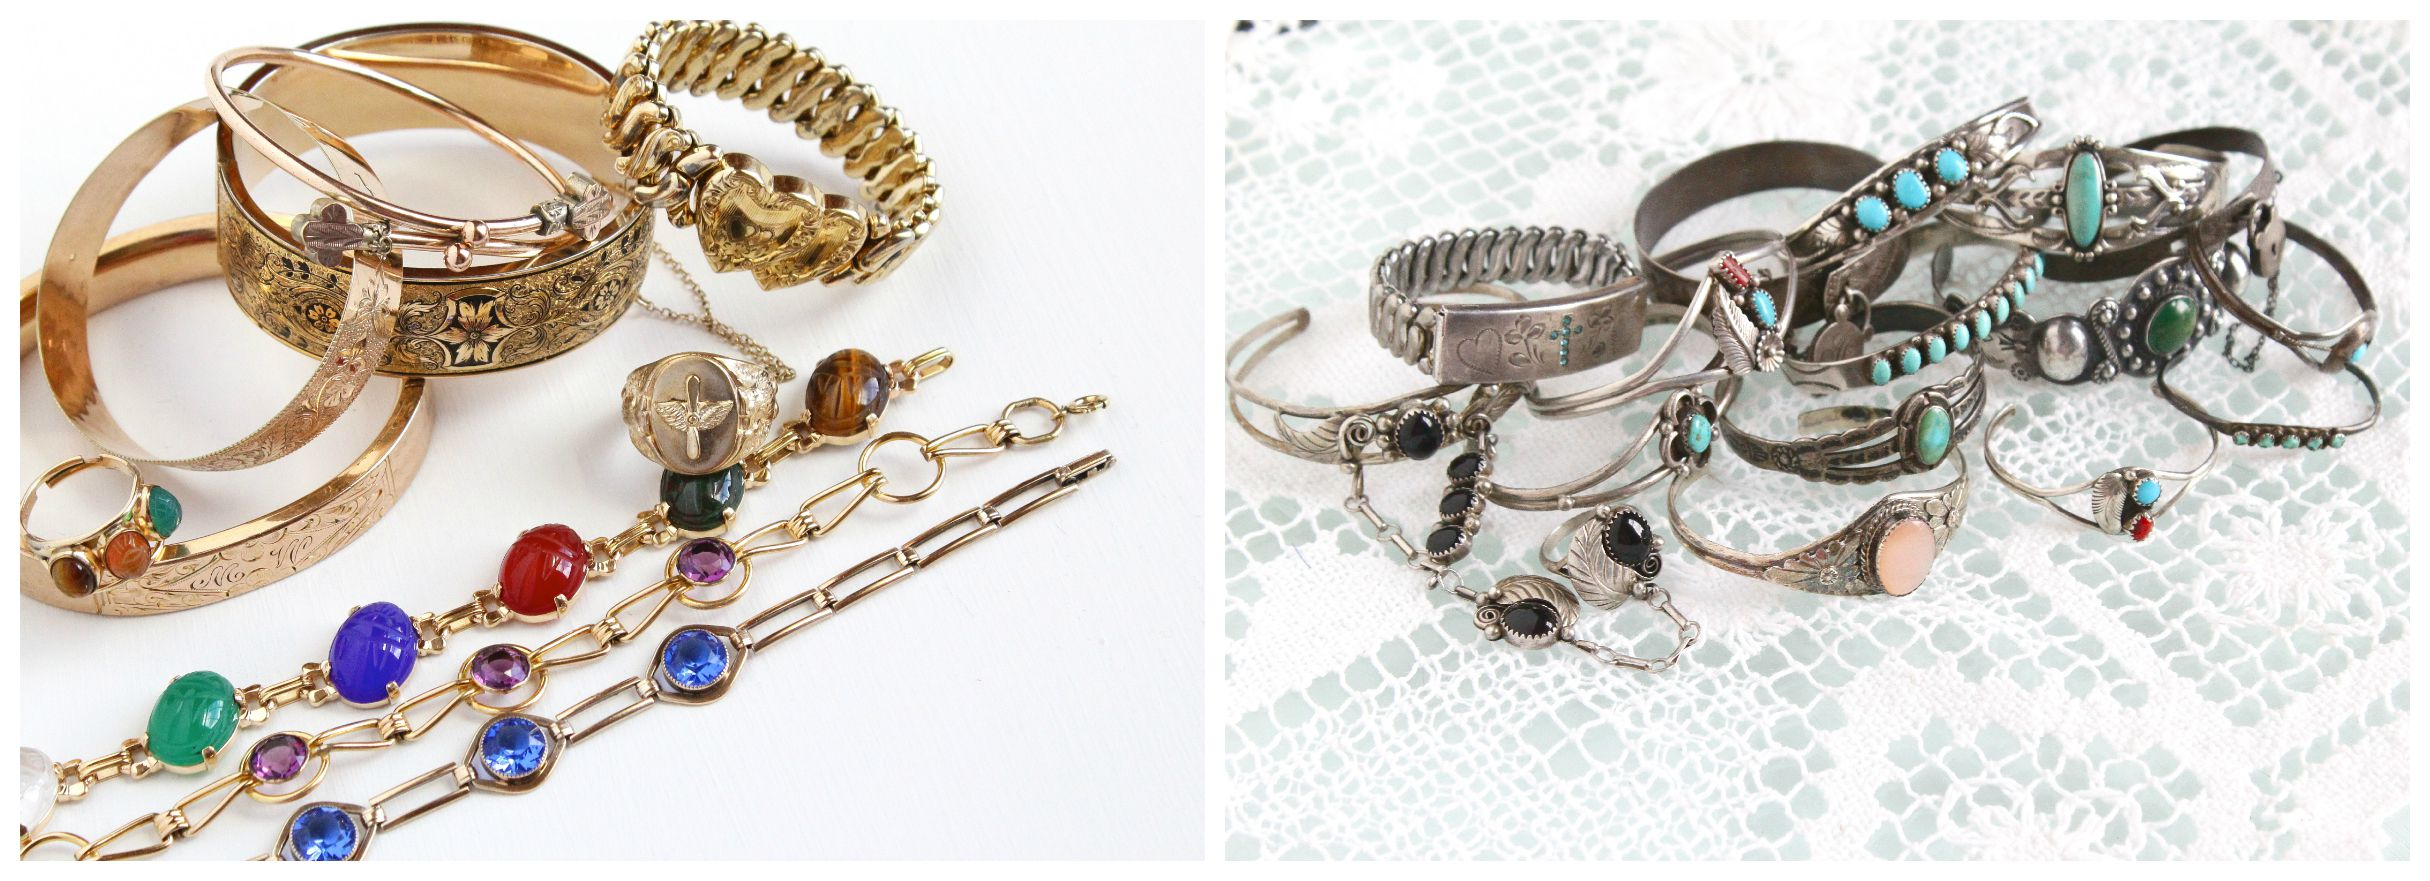 Gold filled vs sterling silver! Vintage bracelets galore, all sourced from the September 2015 Brimfield show.